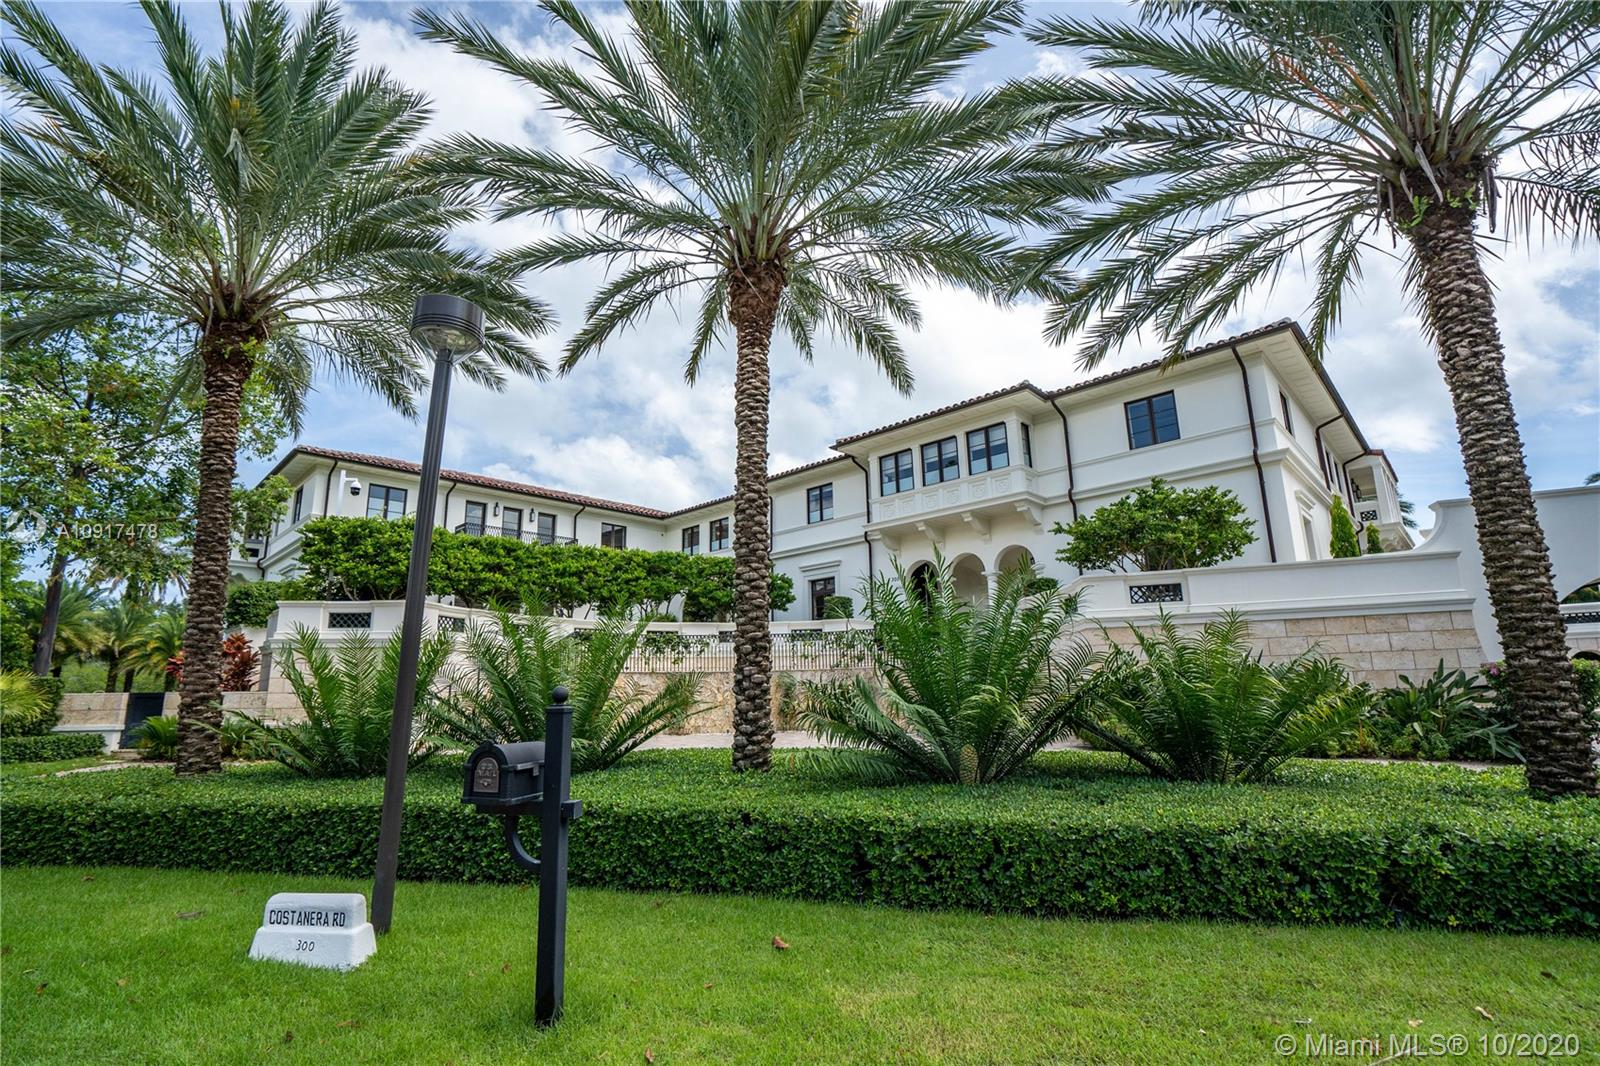 300 Costanera rd- coral-gables-fl-33143-a10917478-Pic04